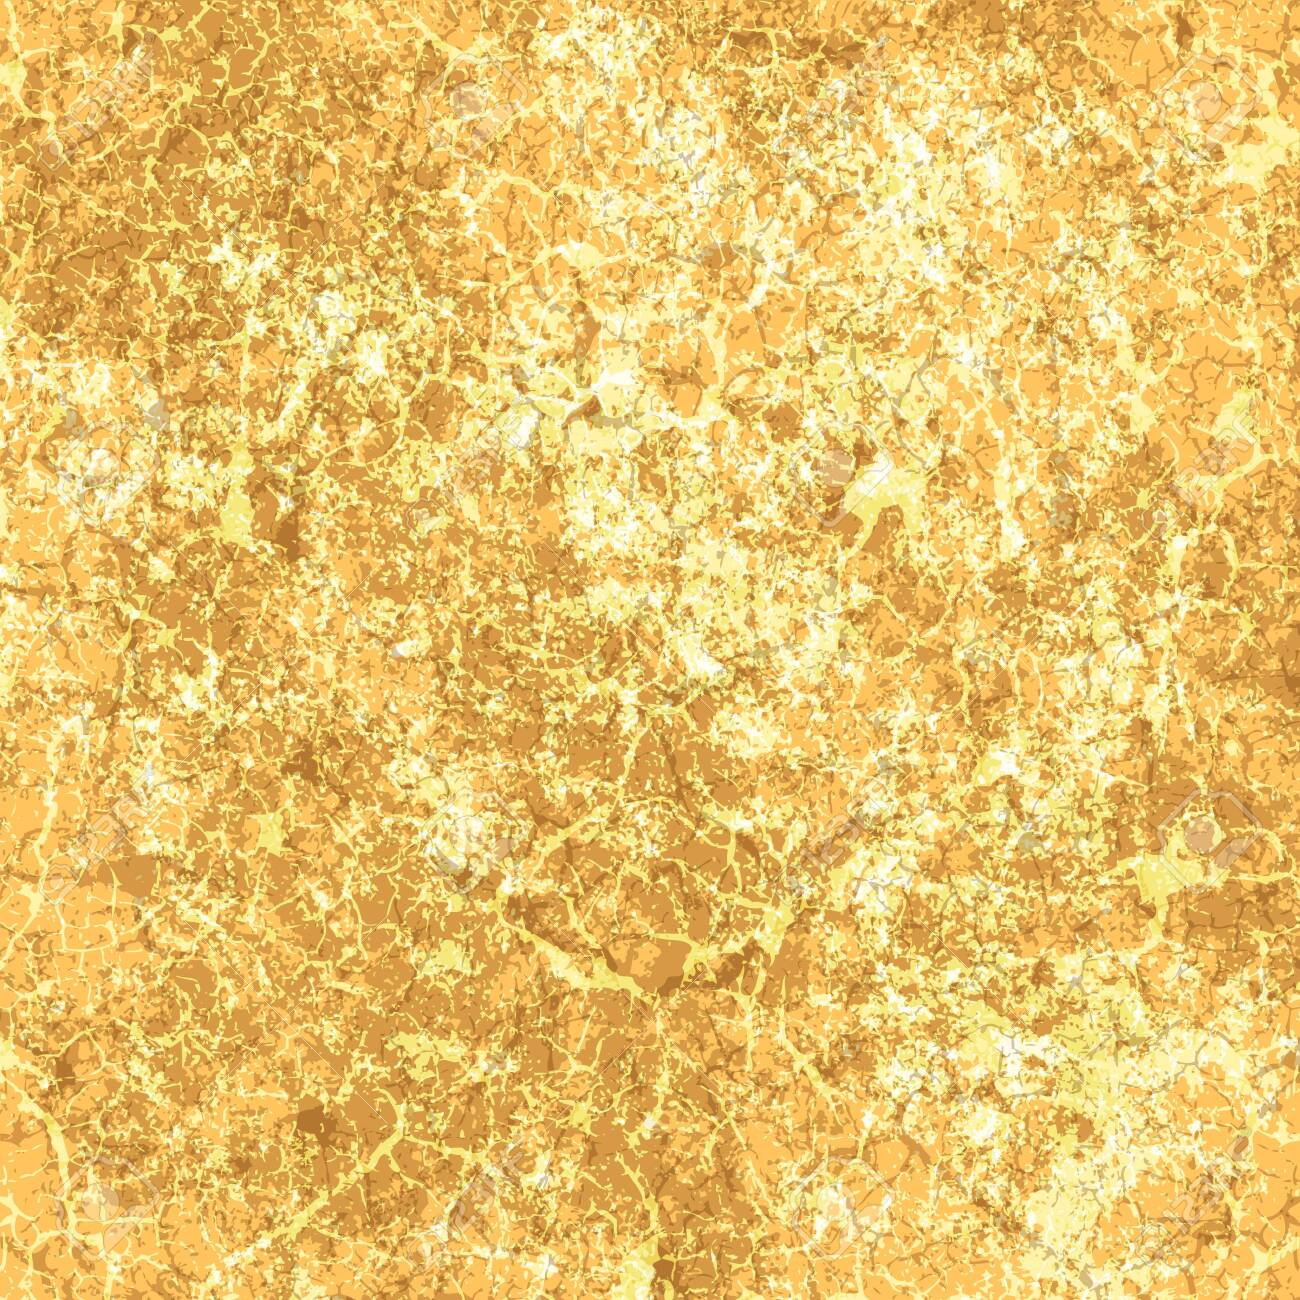 Abstract Illustration Grunge Seamless Background Of Yellow Marble Royalty Free Cliparts Vectors And Stock Illustration Image 144988571